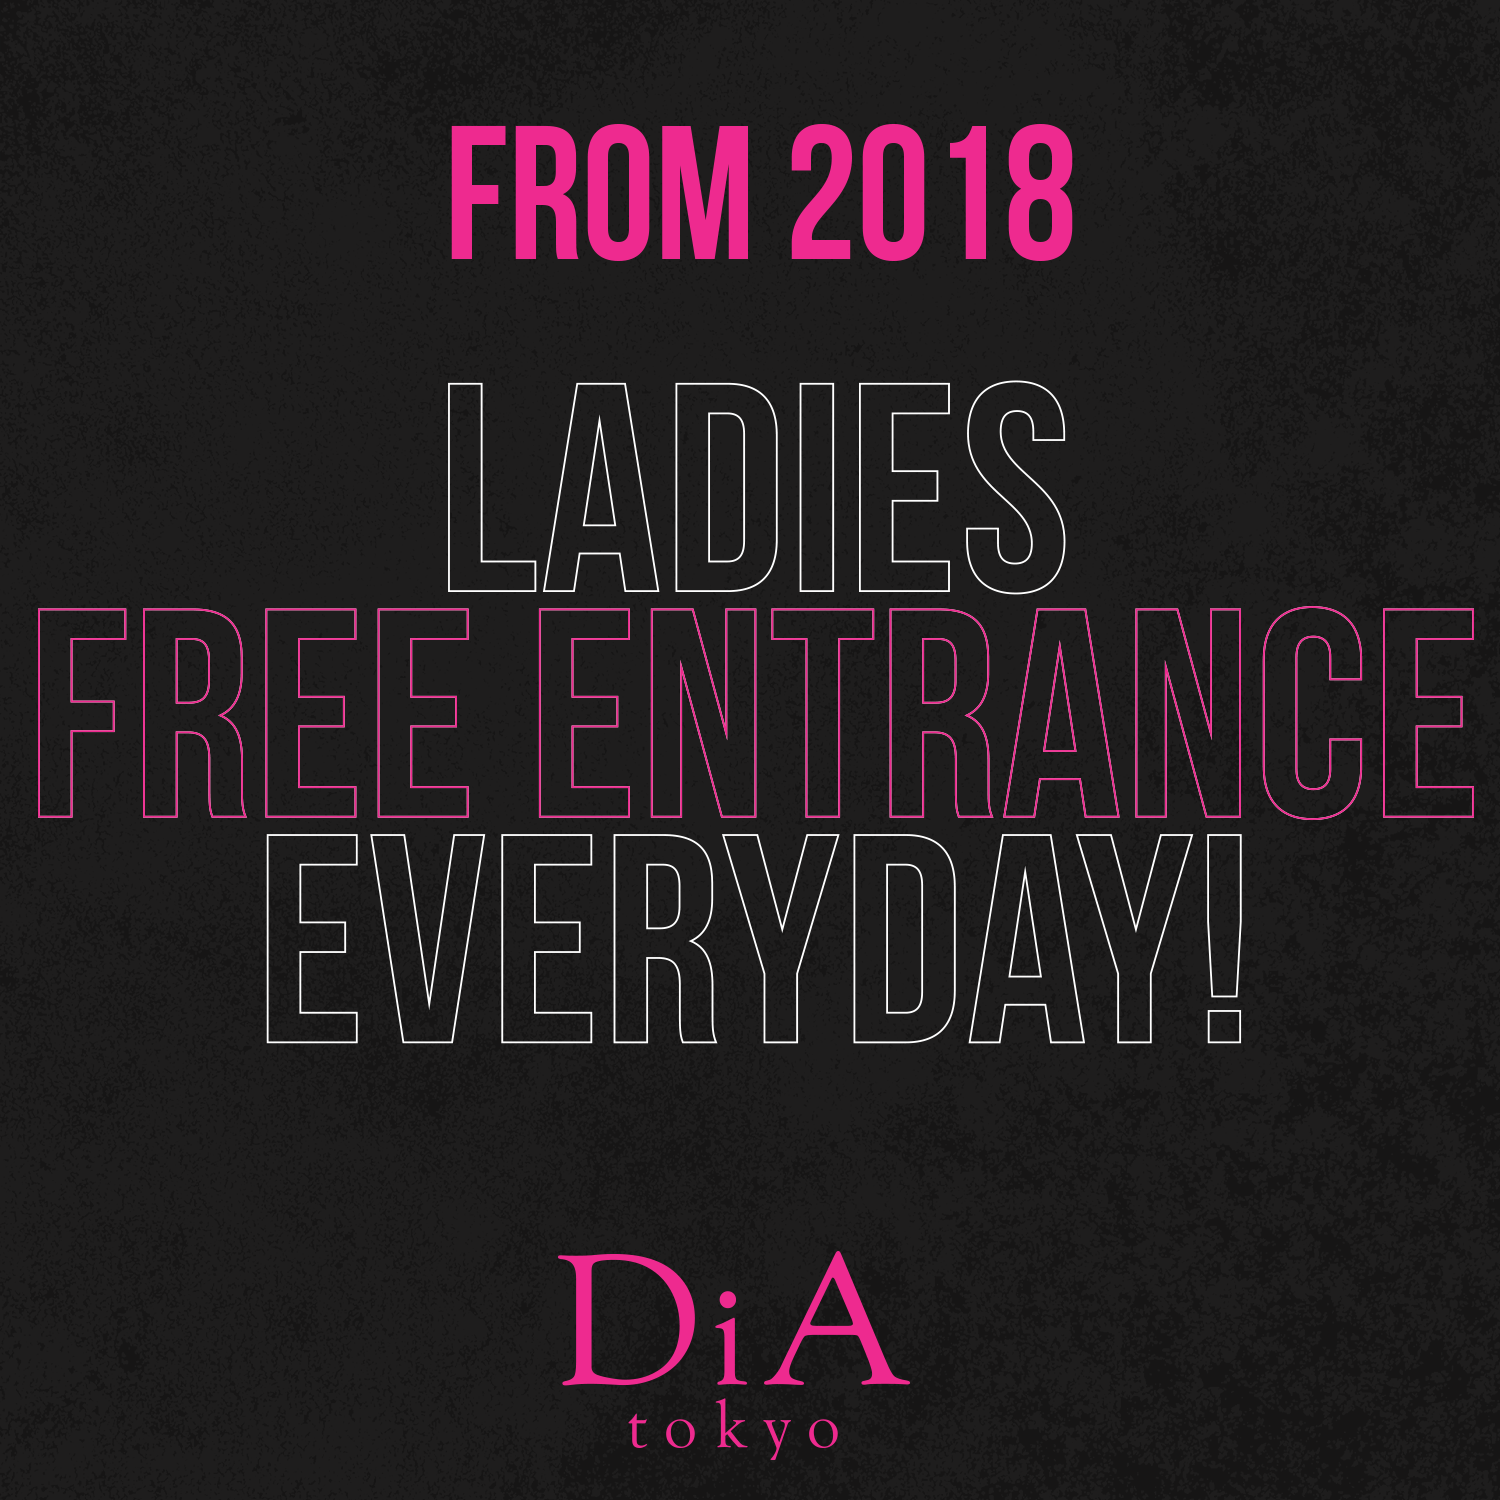 Ladies-Free-Discount-Square-Organge.png